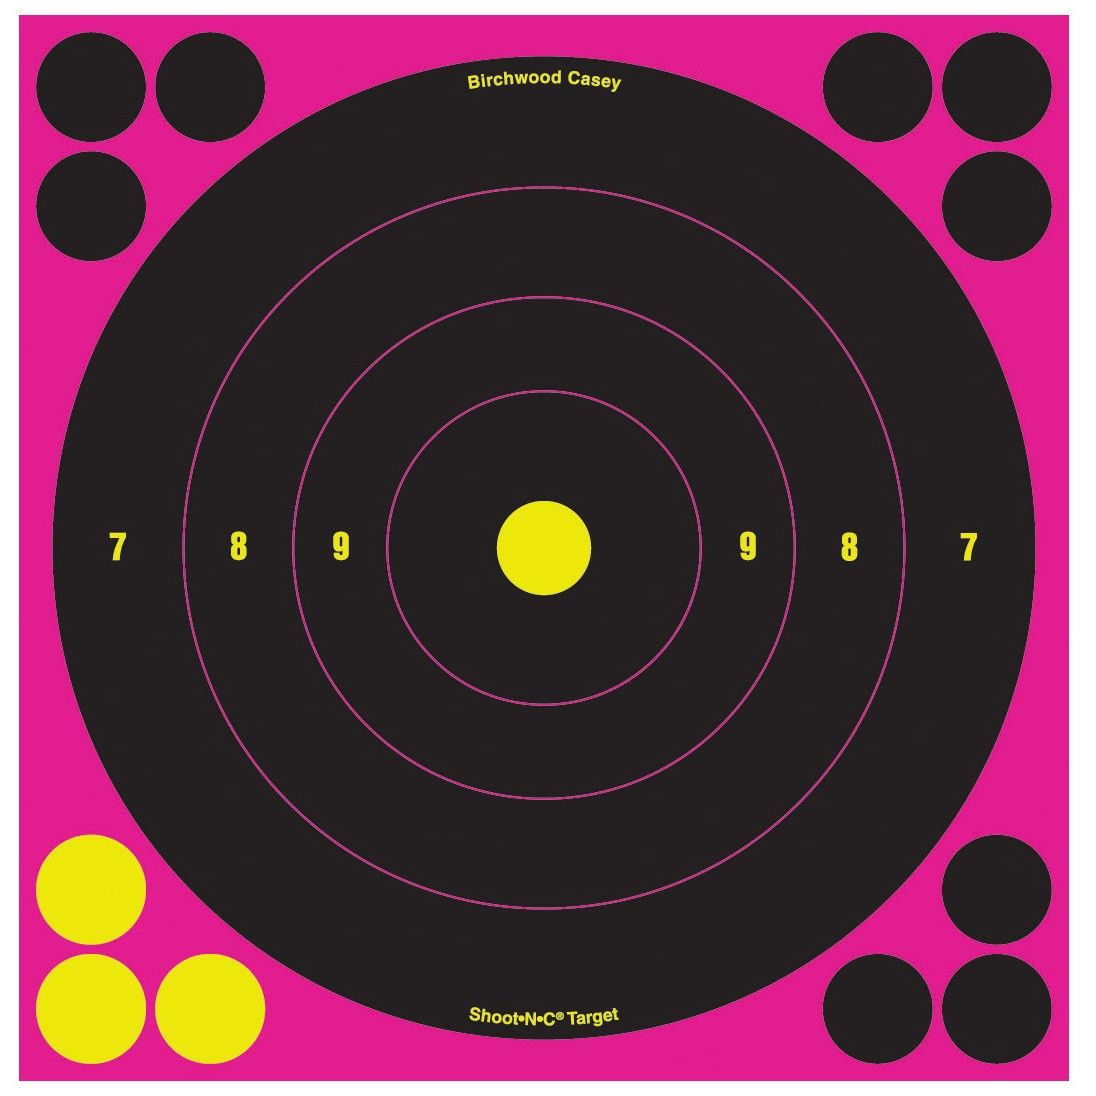 "Birchwood Casey Shoot N C 8"" Pink Bull's-eye Target"